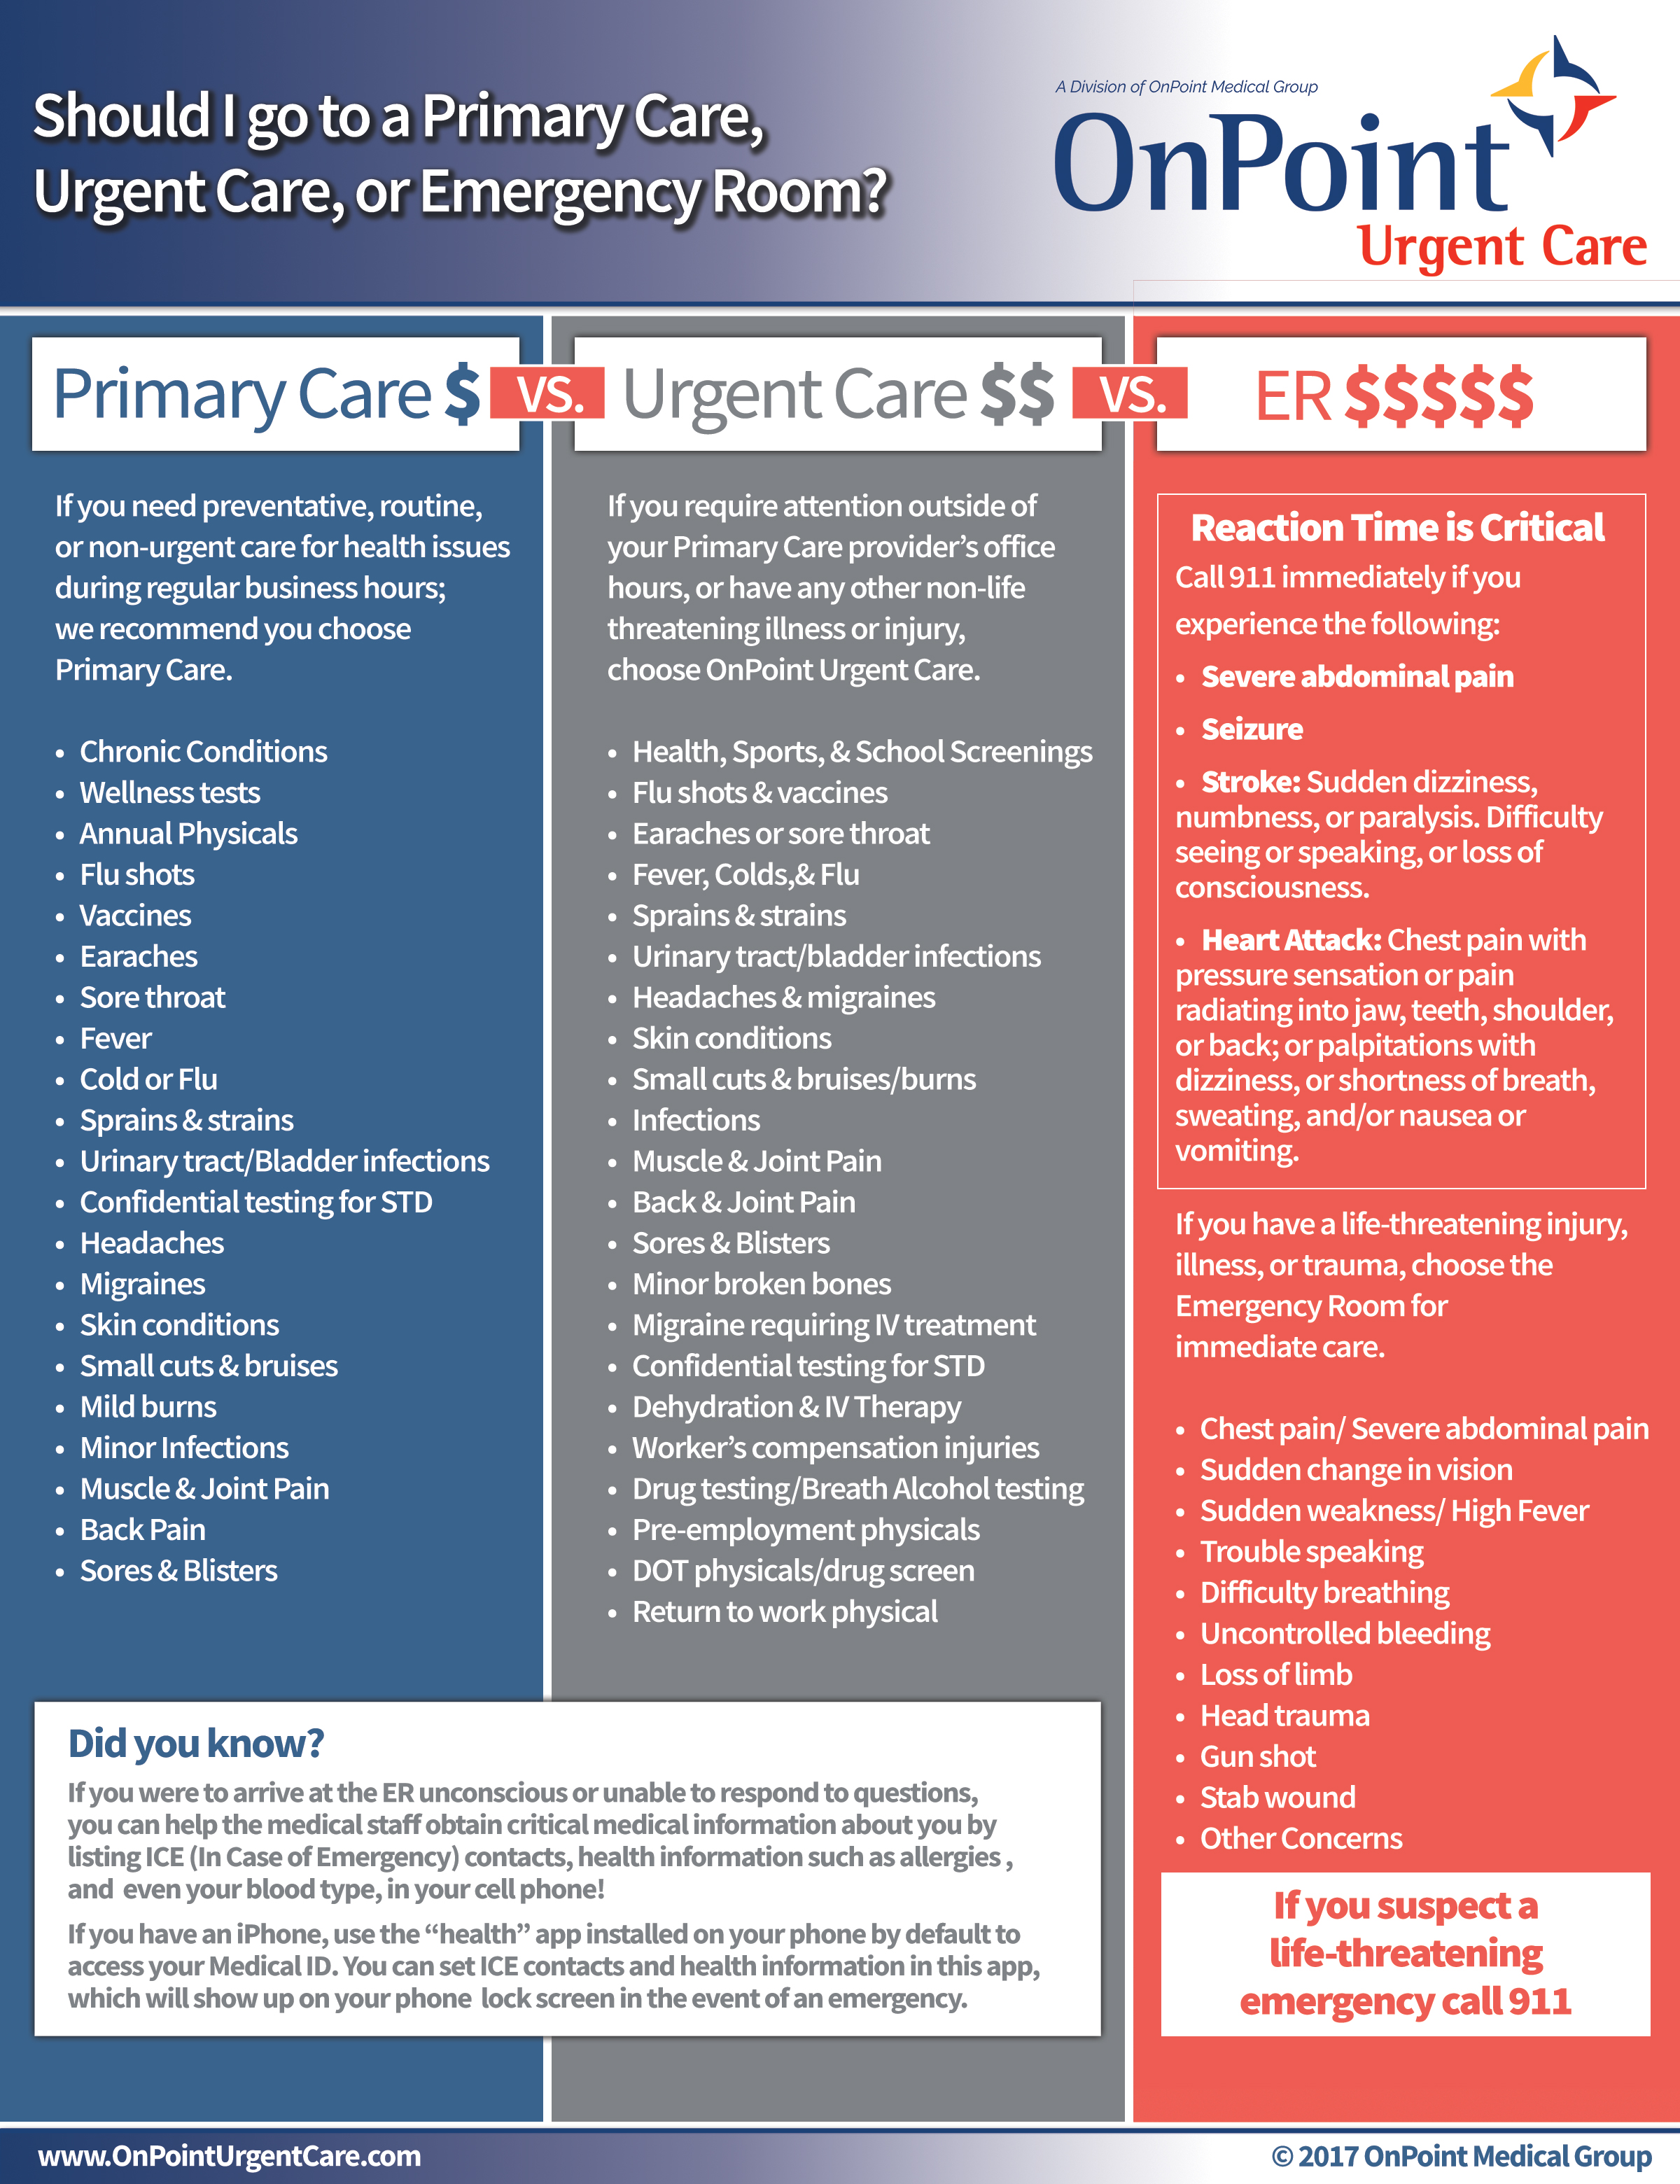 When should I go to an ER vs Urgent Care vs Family Physician